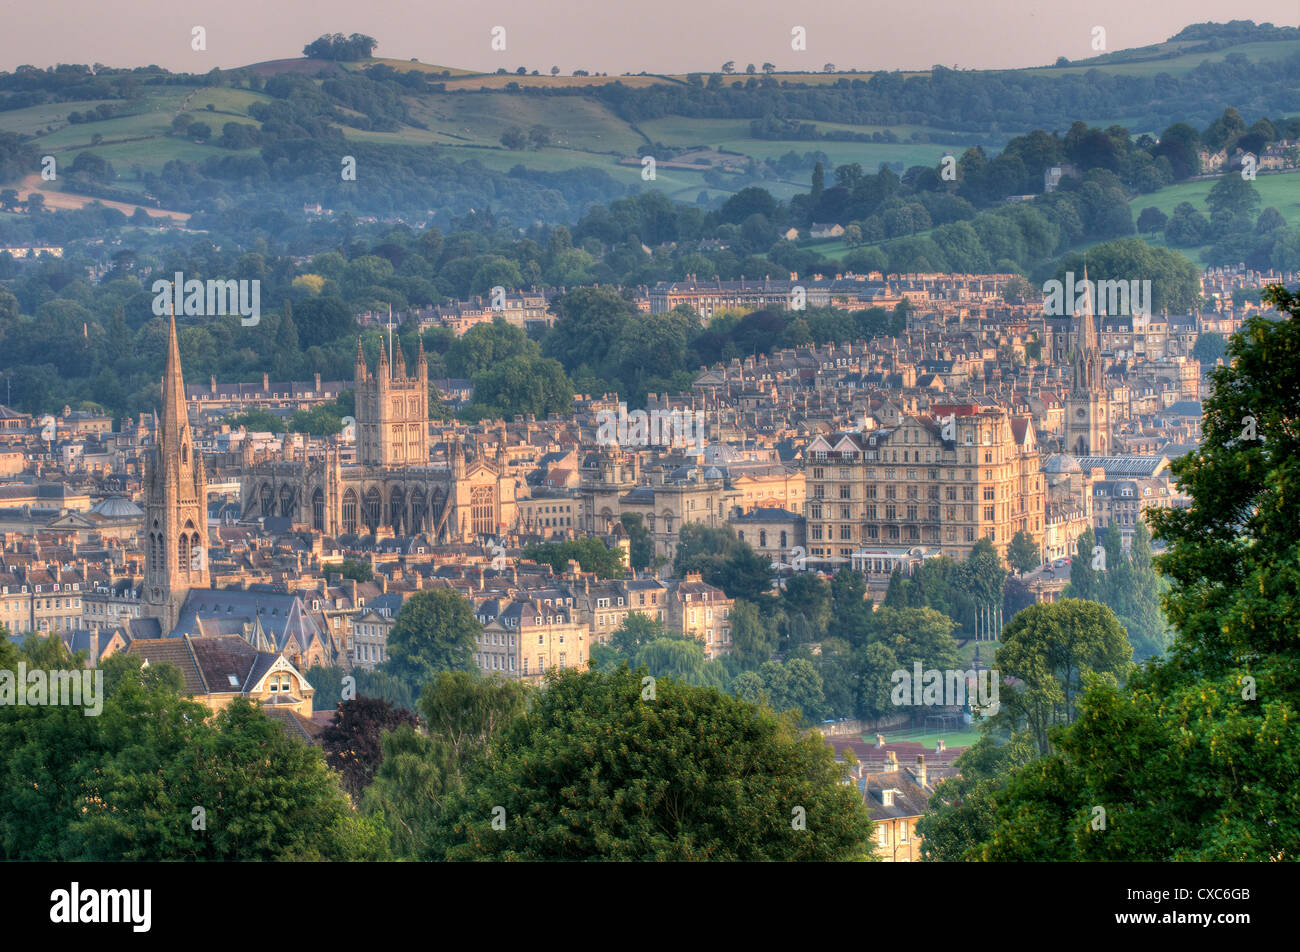 Bath, Somerset, England, United Kingdom, Europe - Stock Image